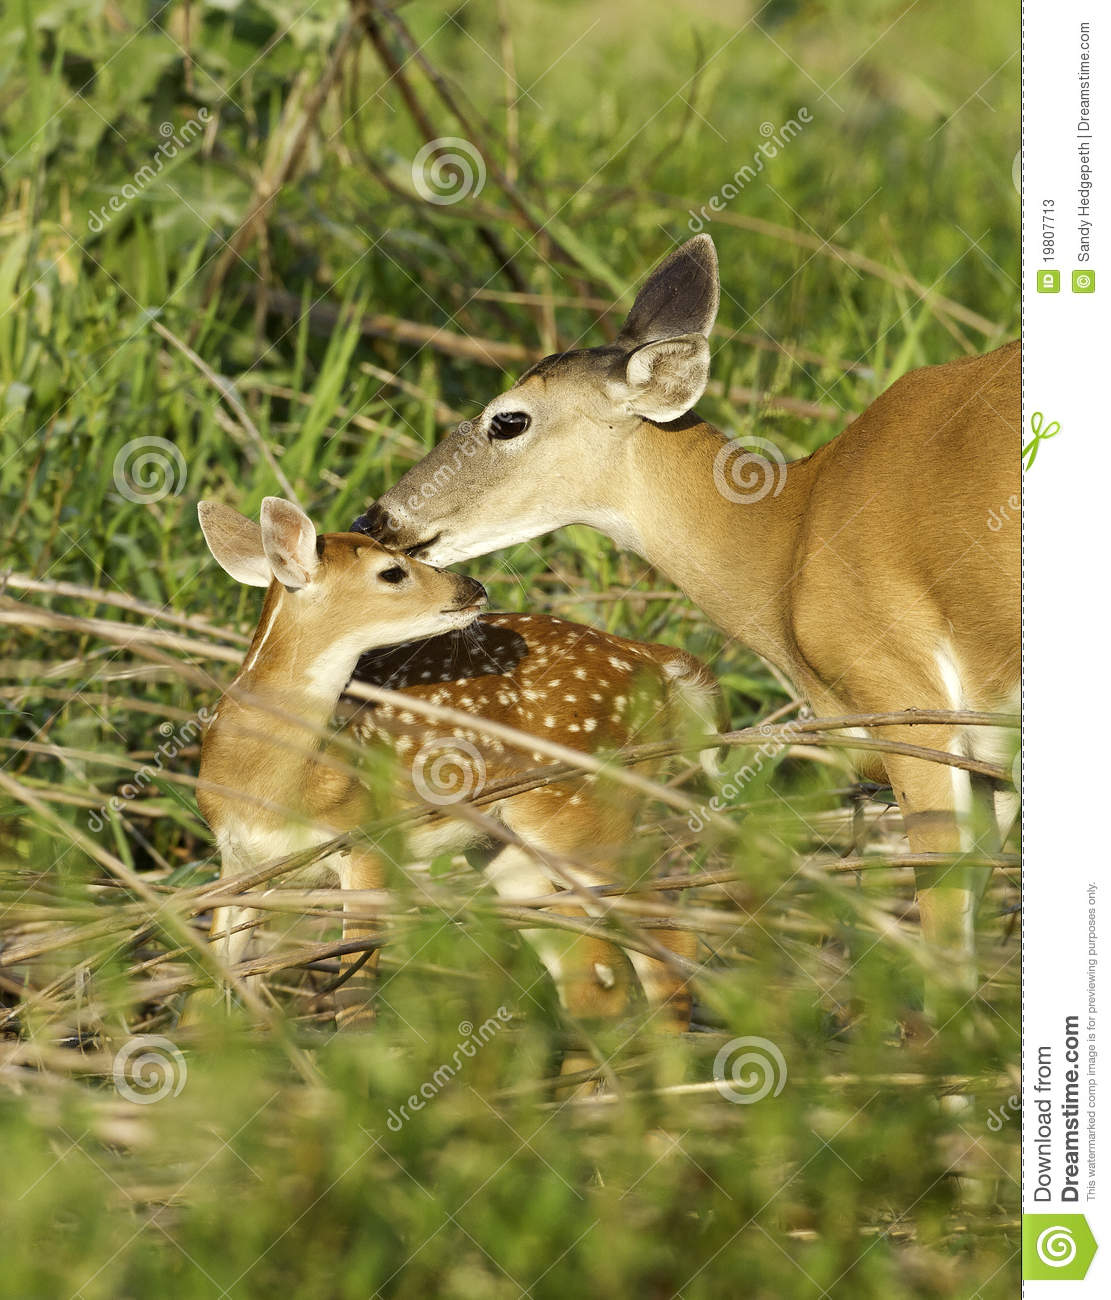 Young Fawn and Doe Interacting